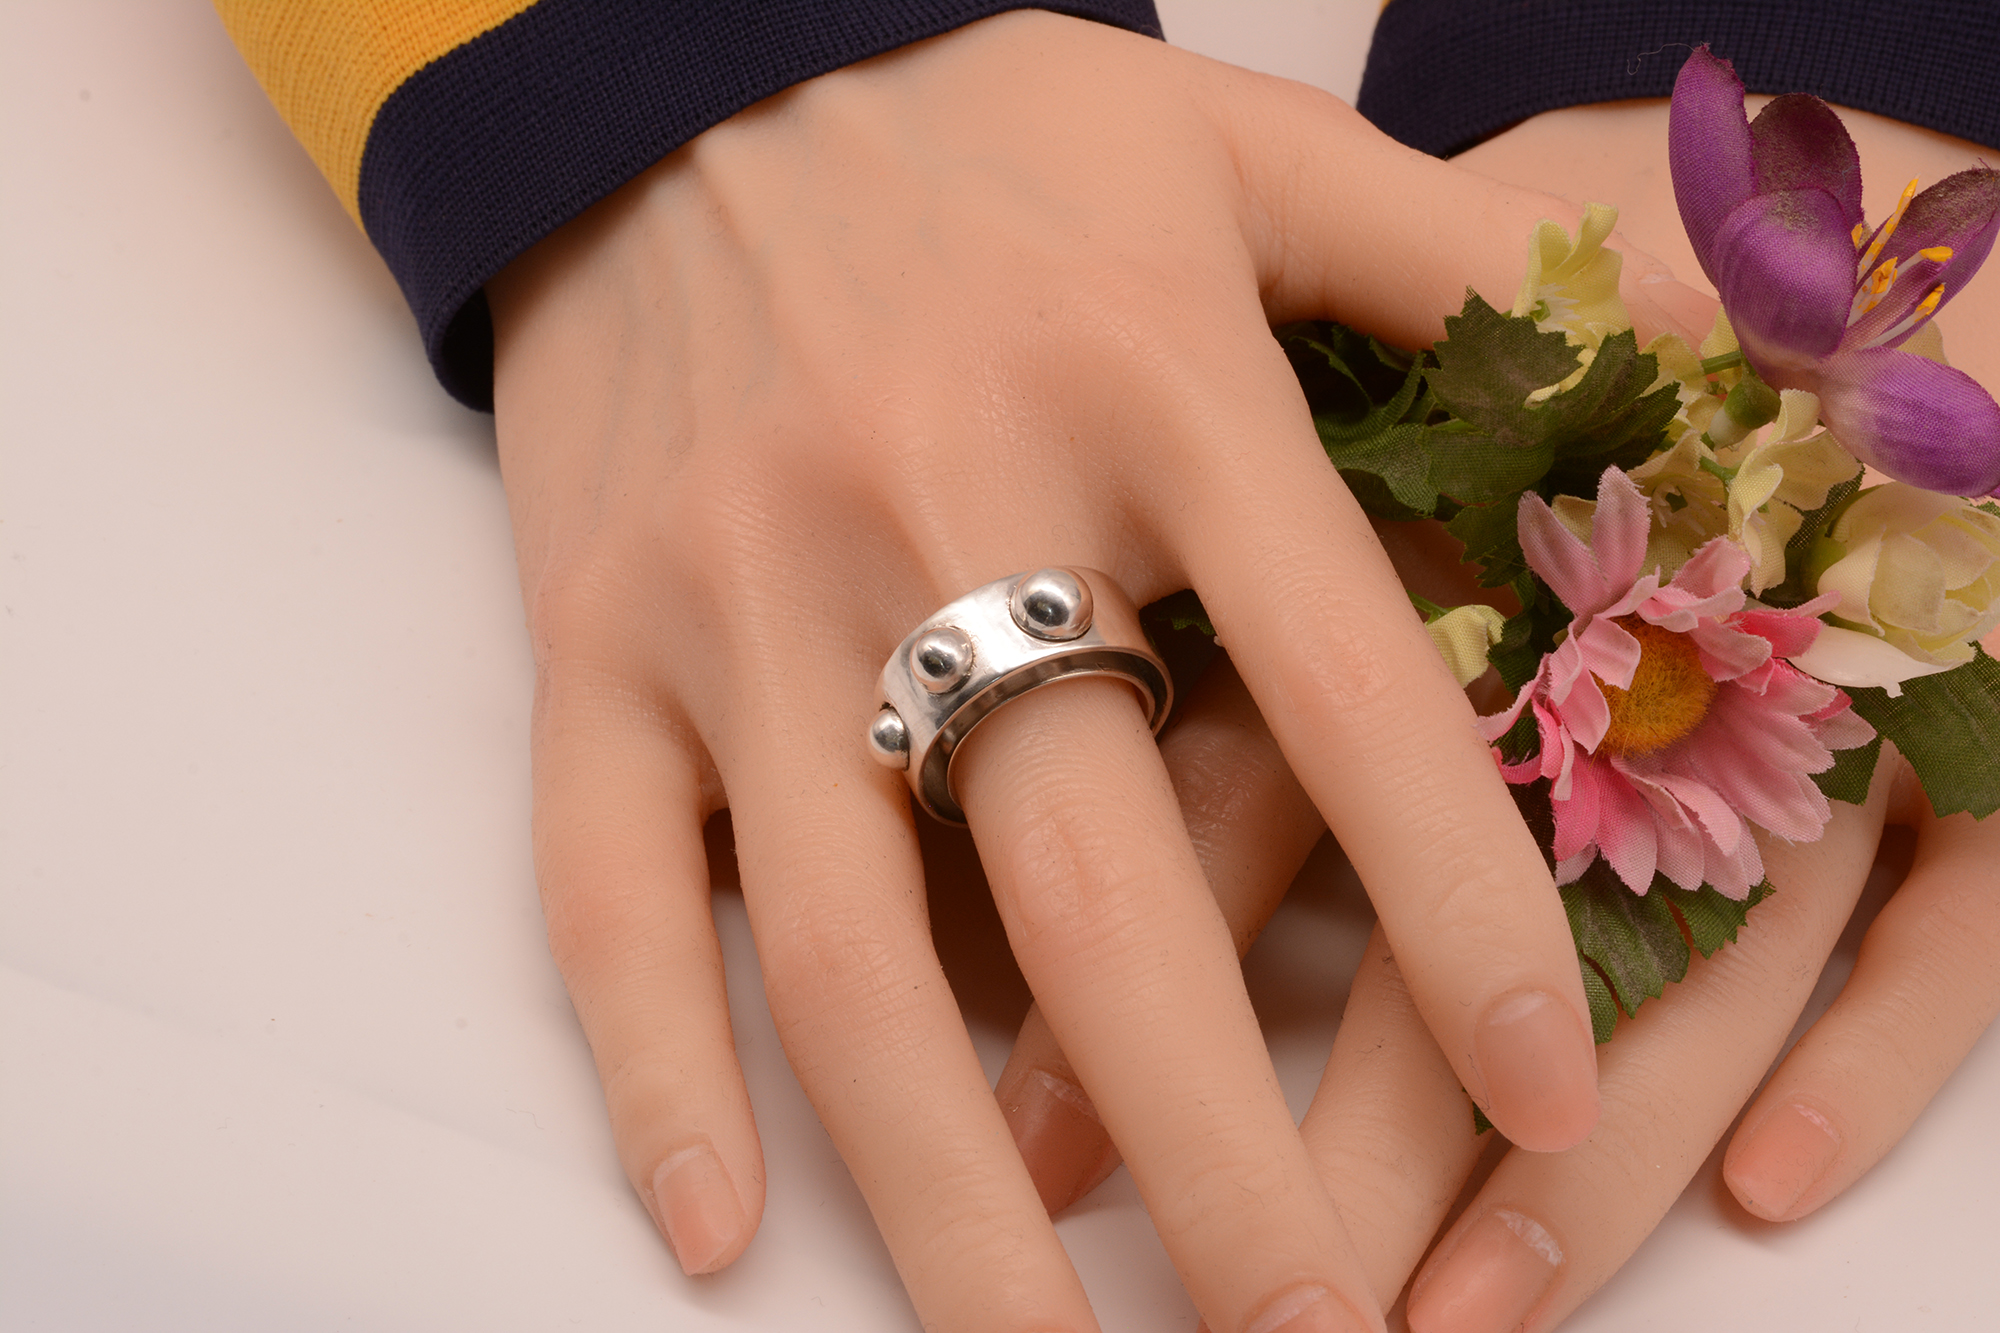 The double ring